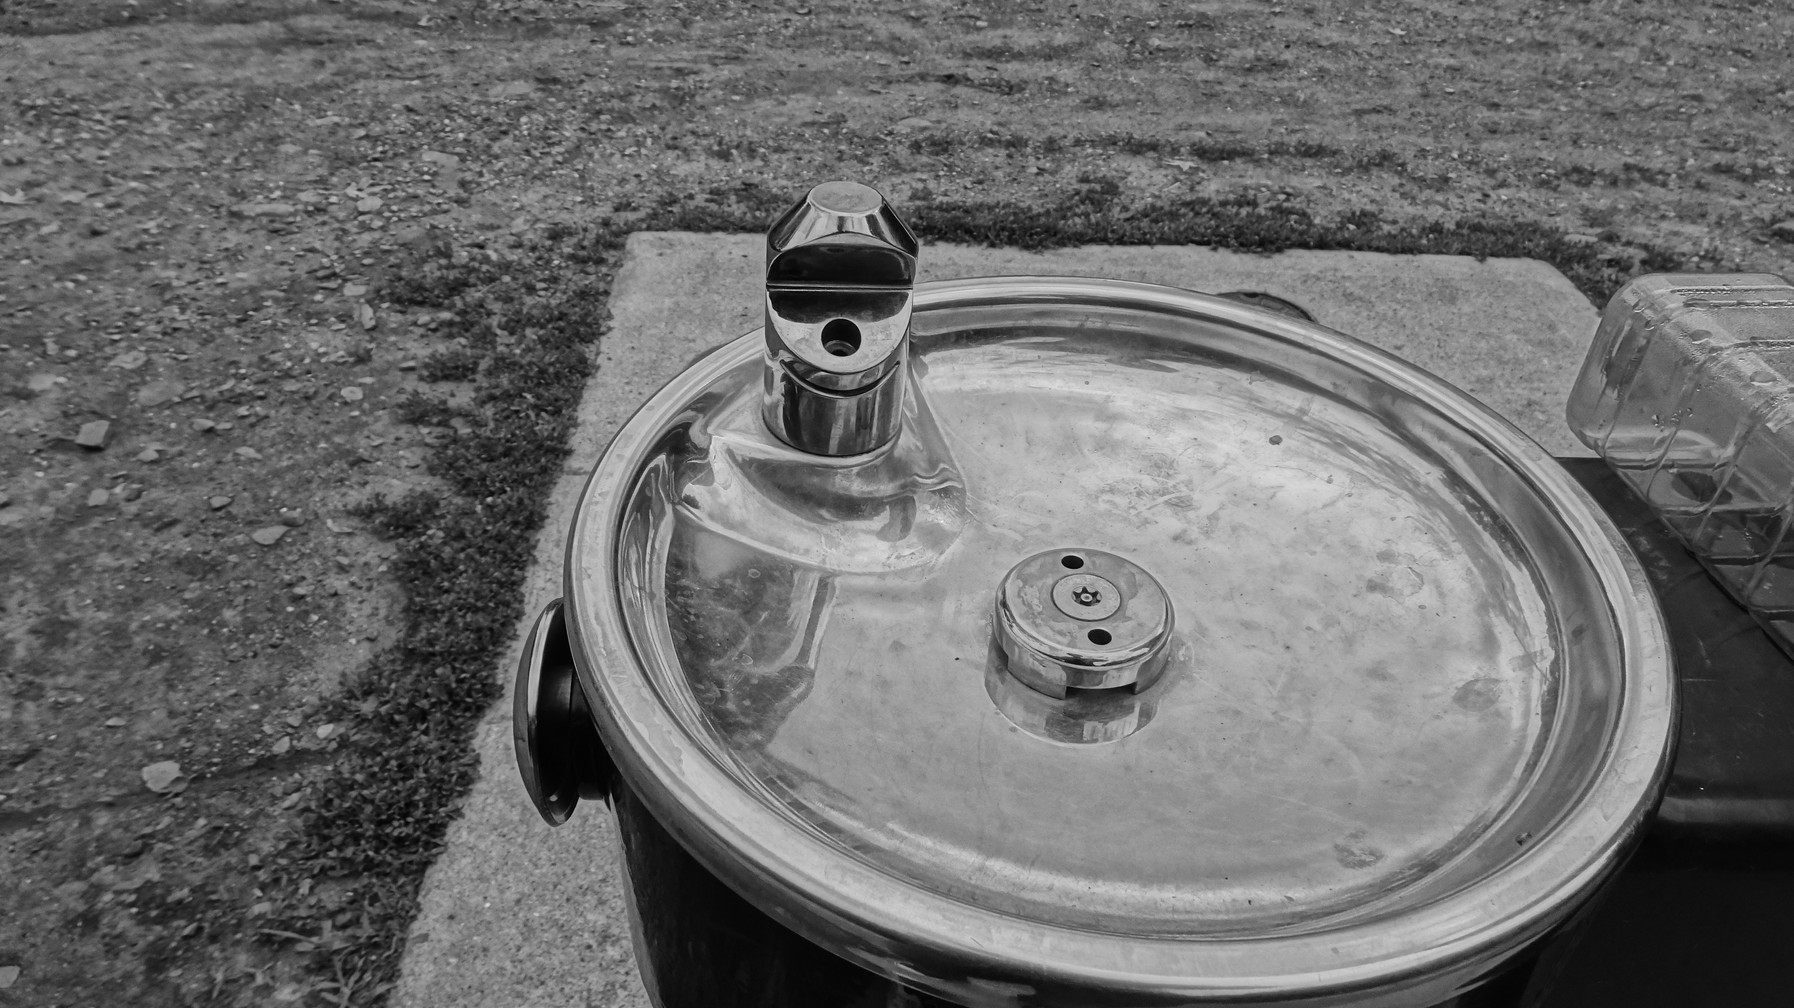 Prospect Park Water Fountain